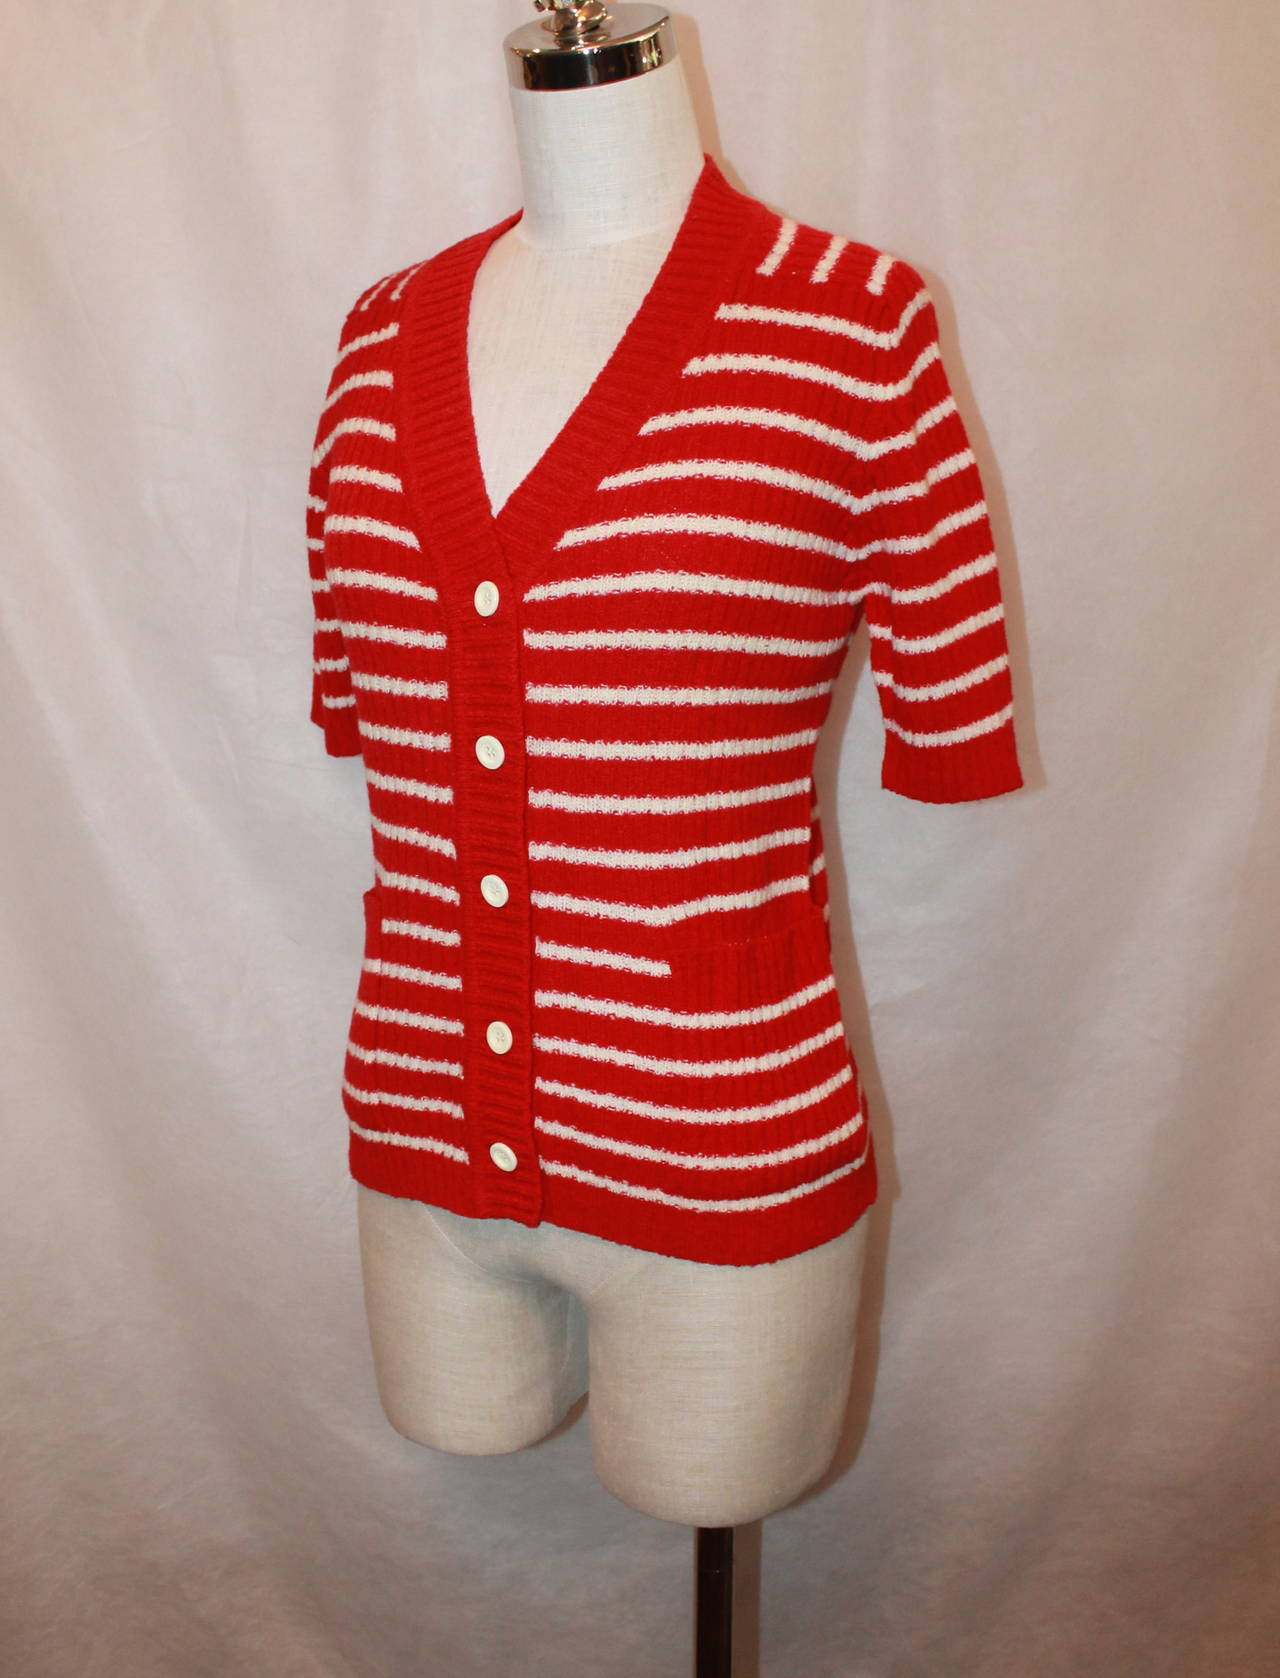 Lanvin 1970's Red & White Striped Wool Blend Short Sleeve Cardigan - 42 2